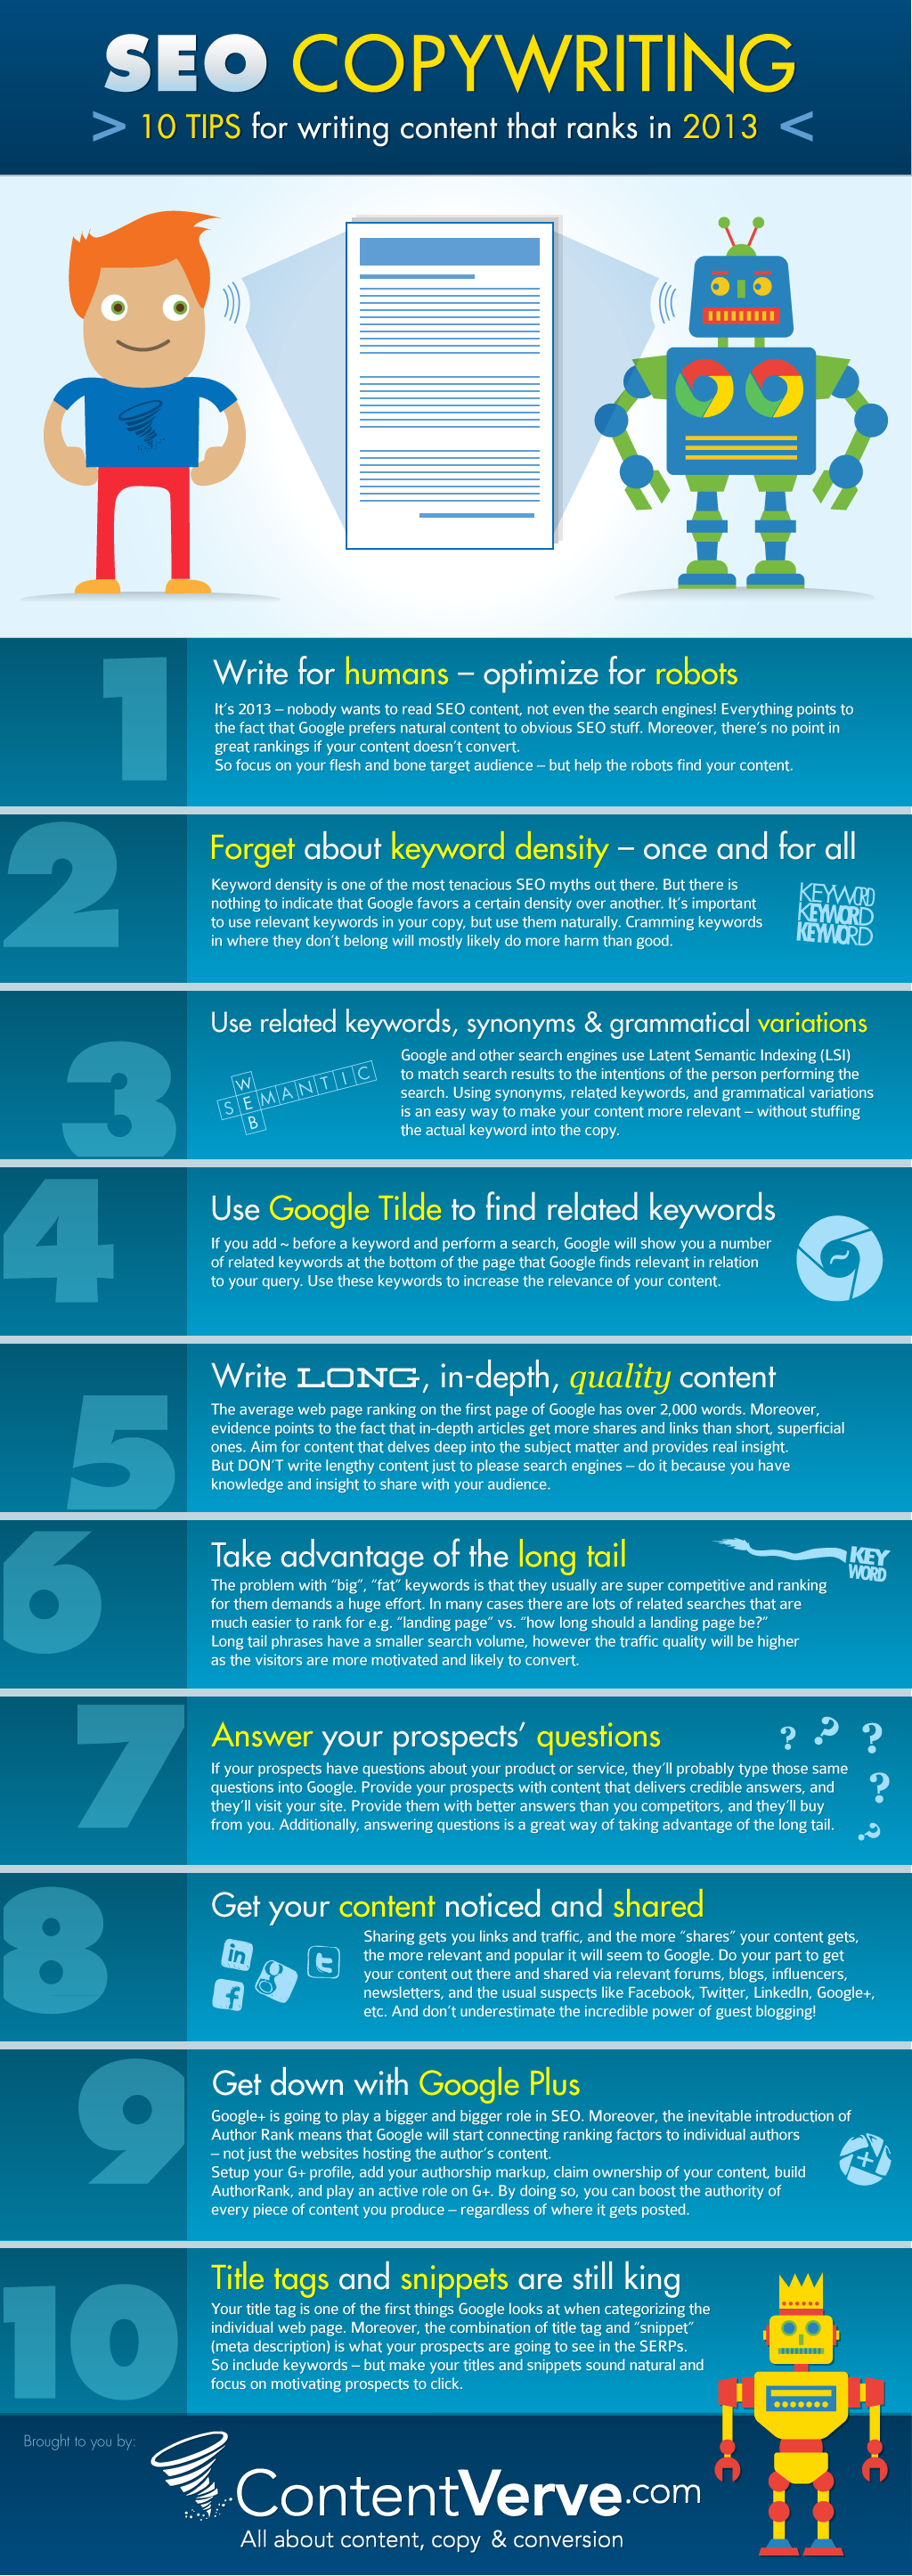 10 Tips for Writing Content to Get Good Rank in Google for 2013 and 2014